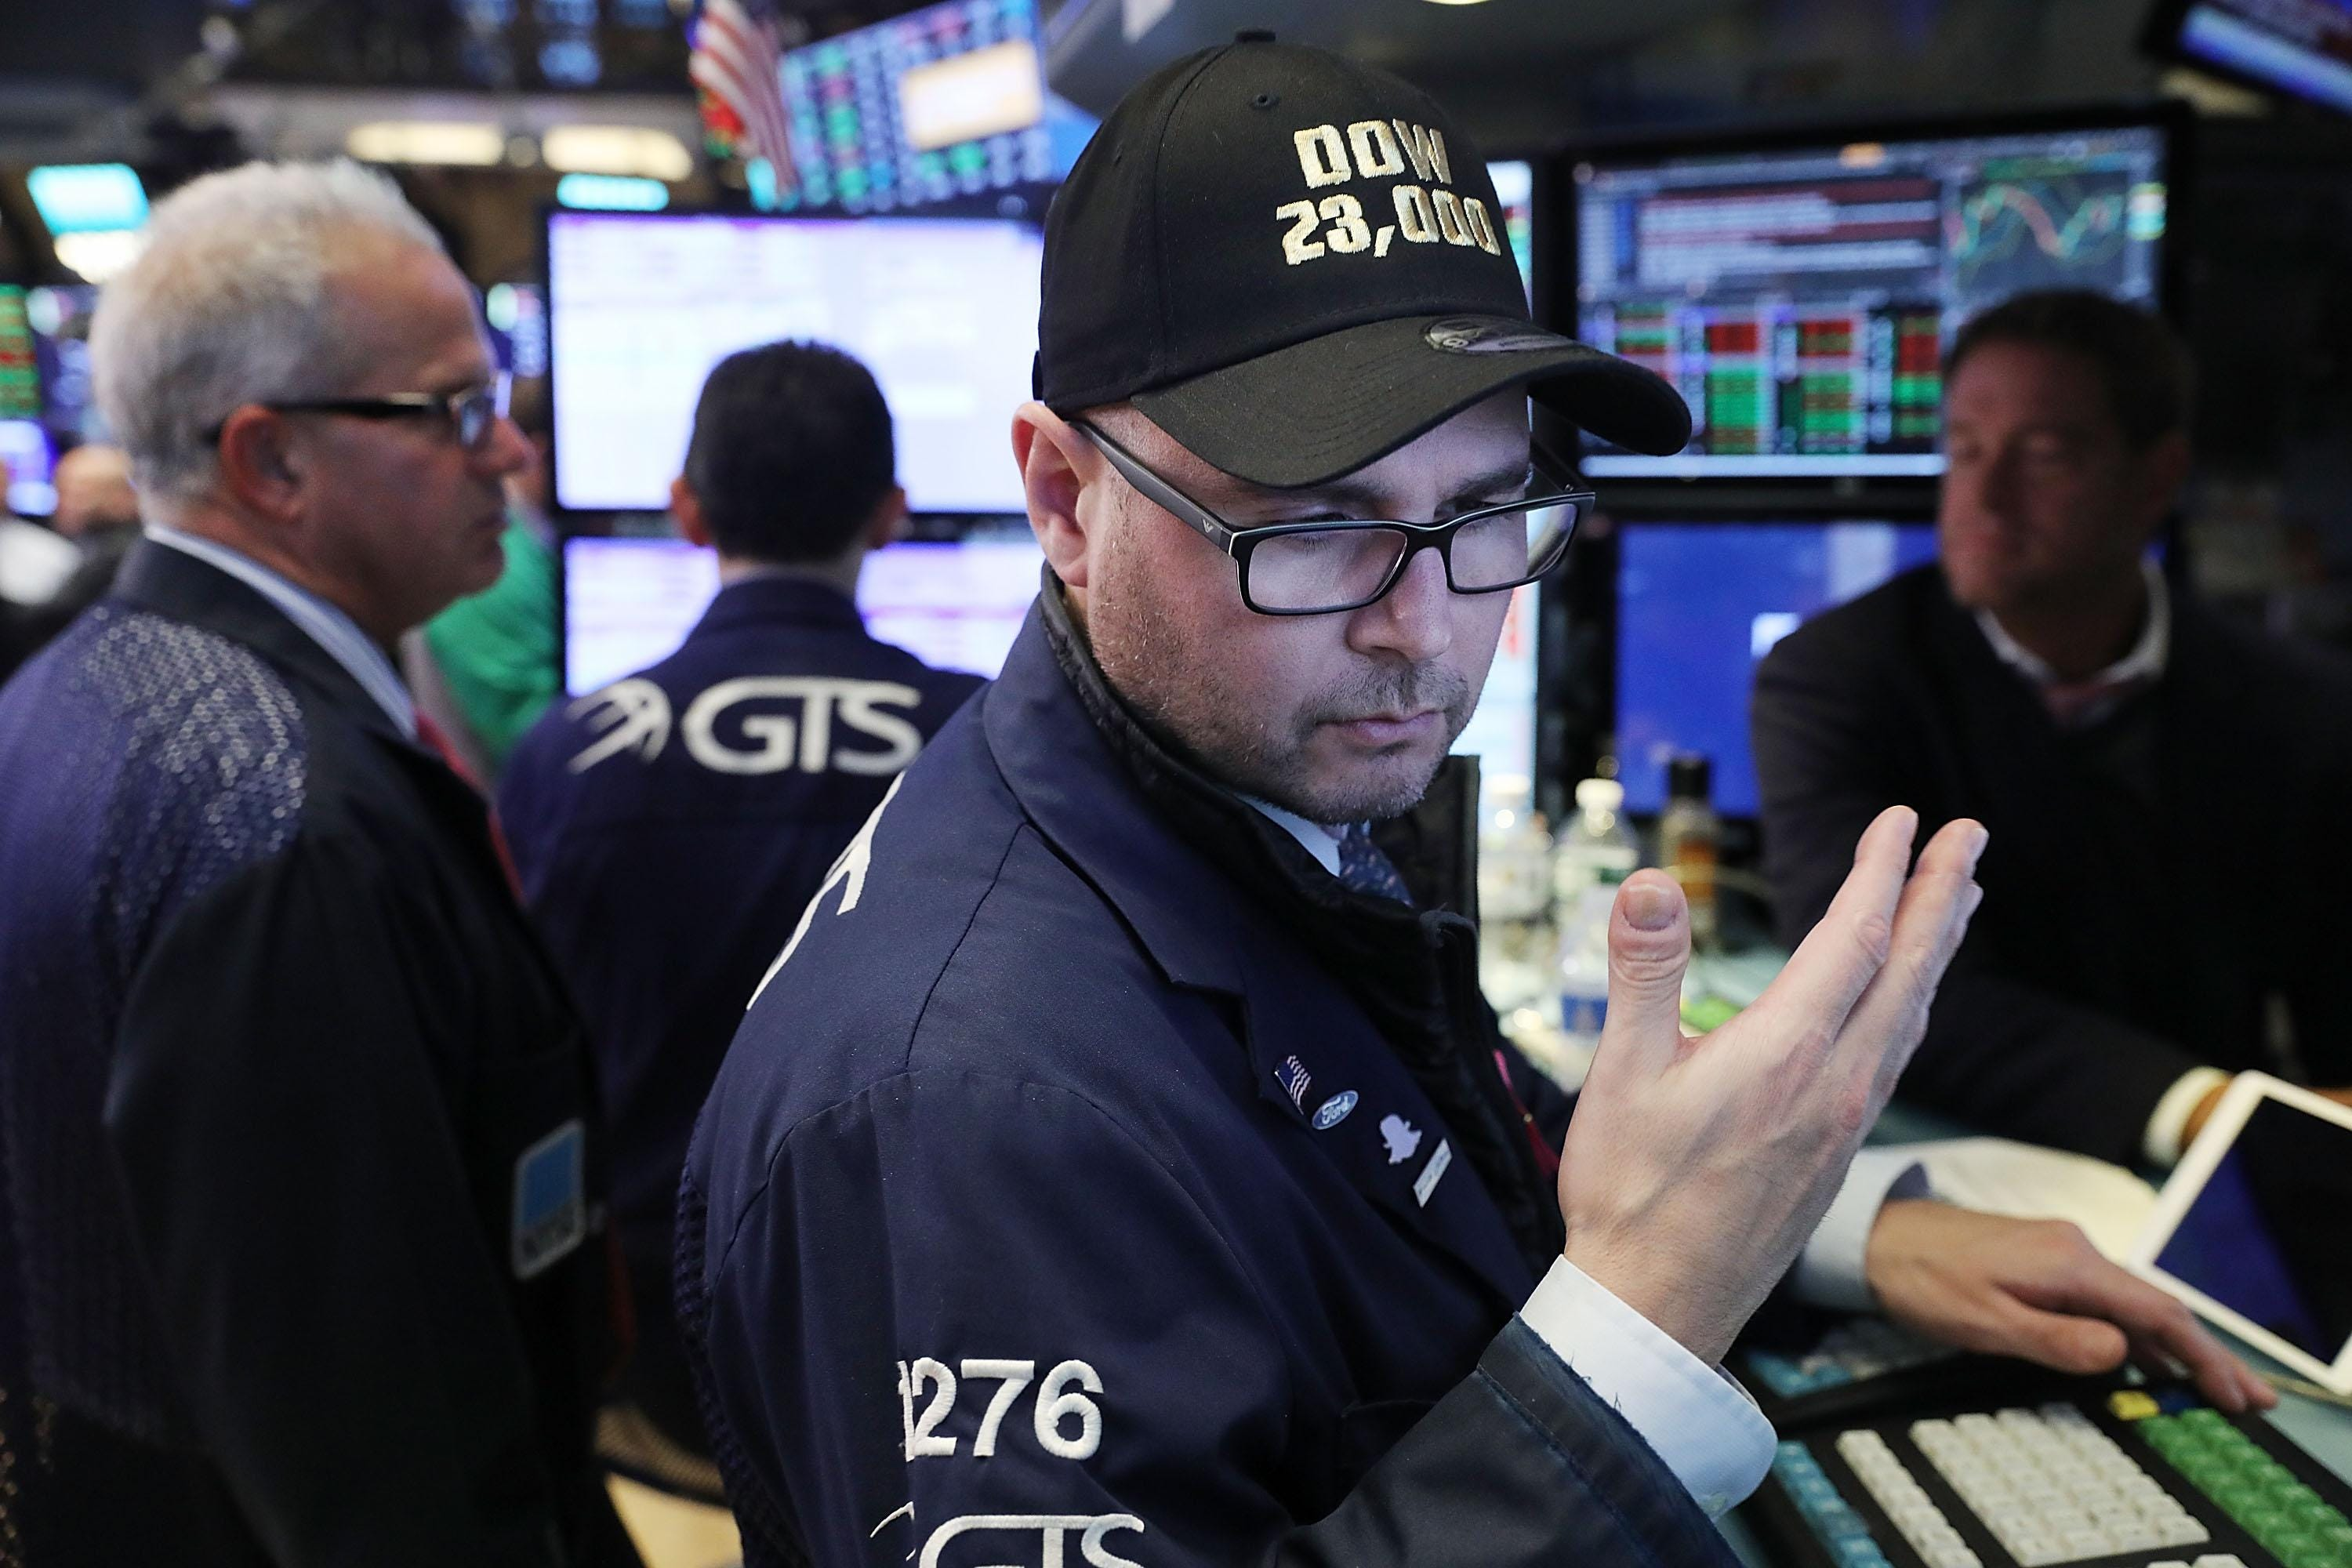 New highs hit for Dow, S&P